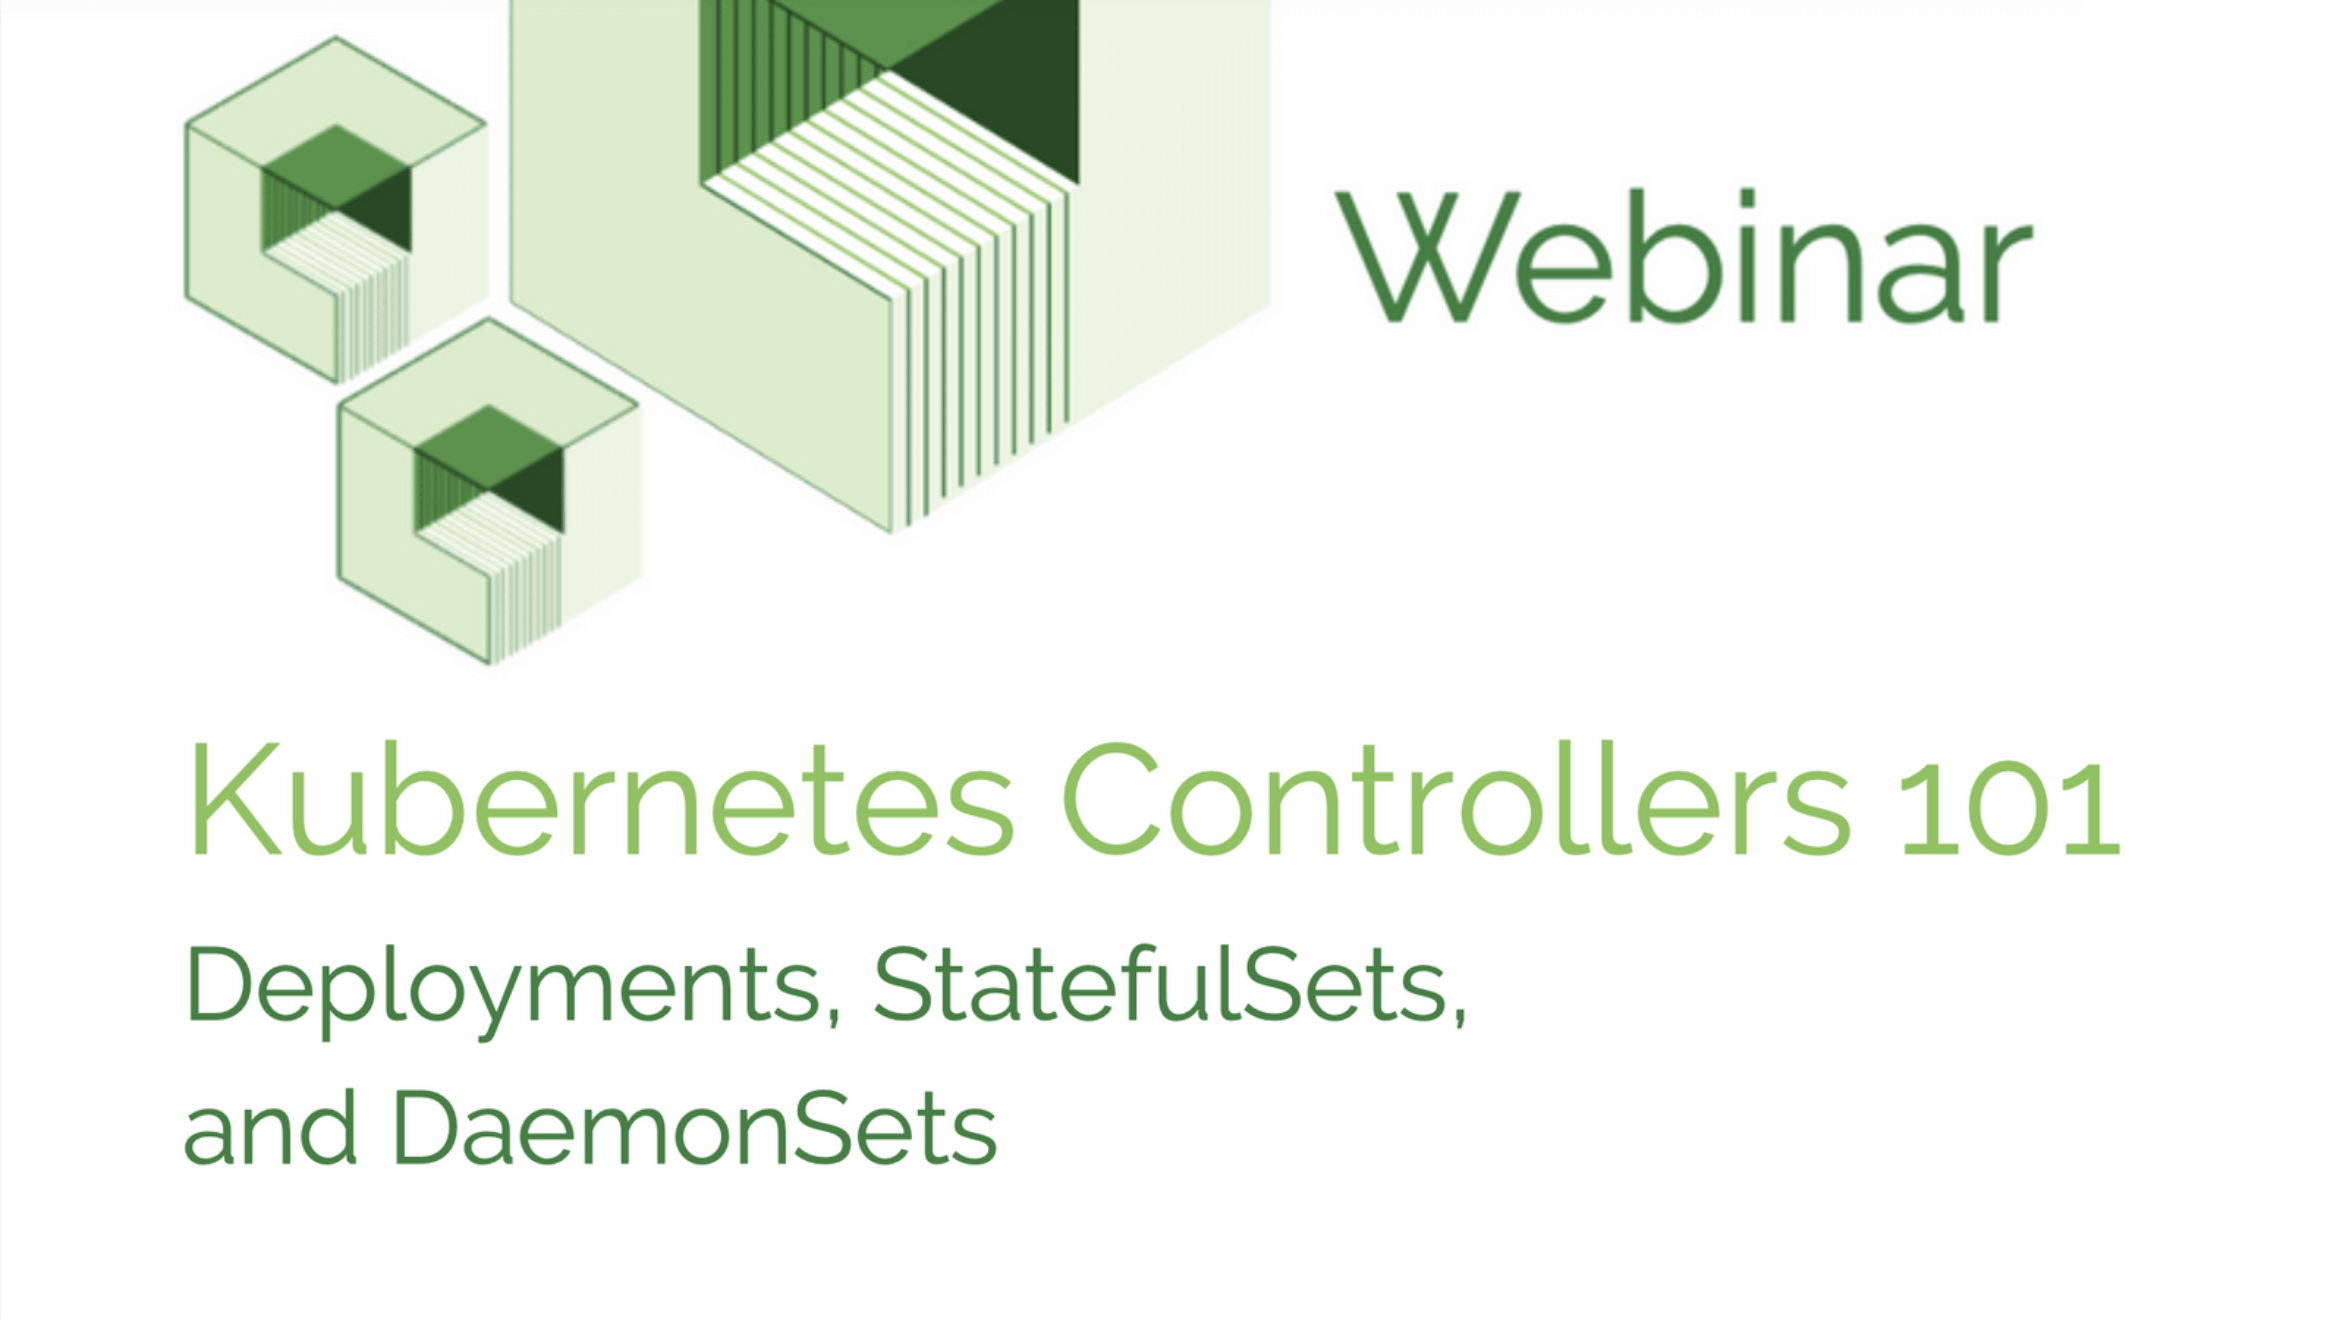 Kubernetes Controllers 101: Deployments, StatefulSets, and DaemonSets